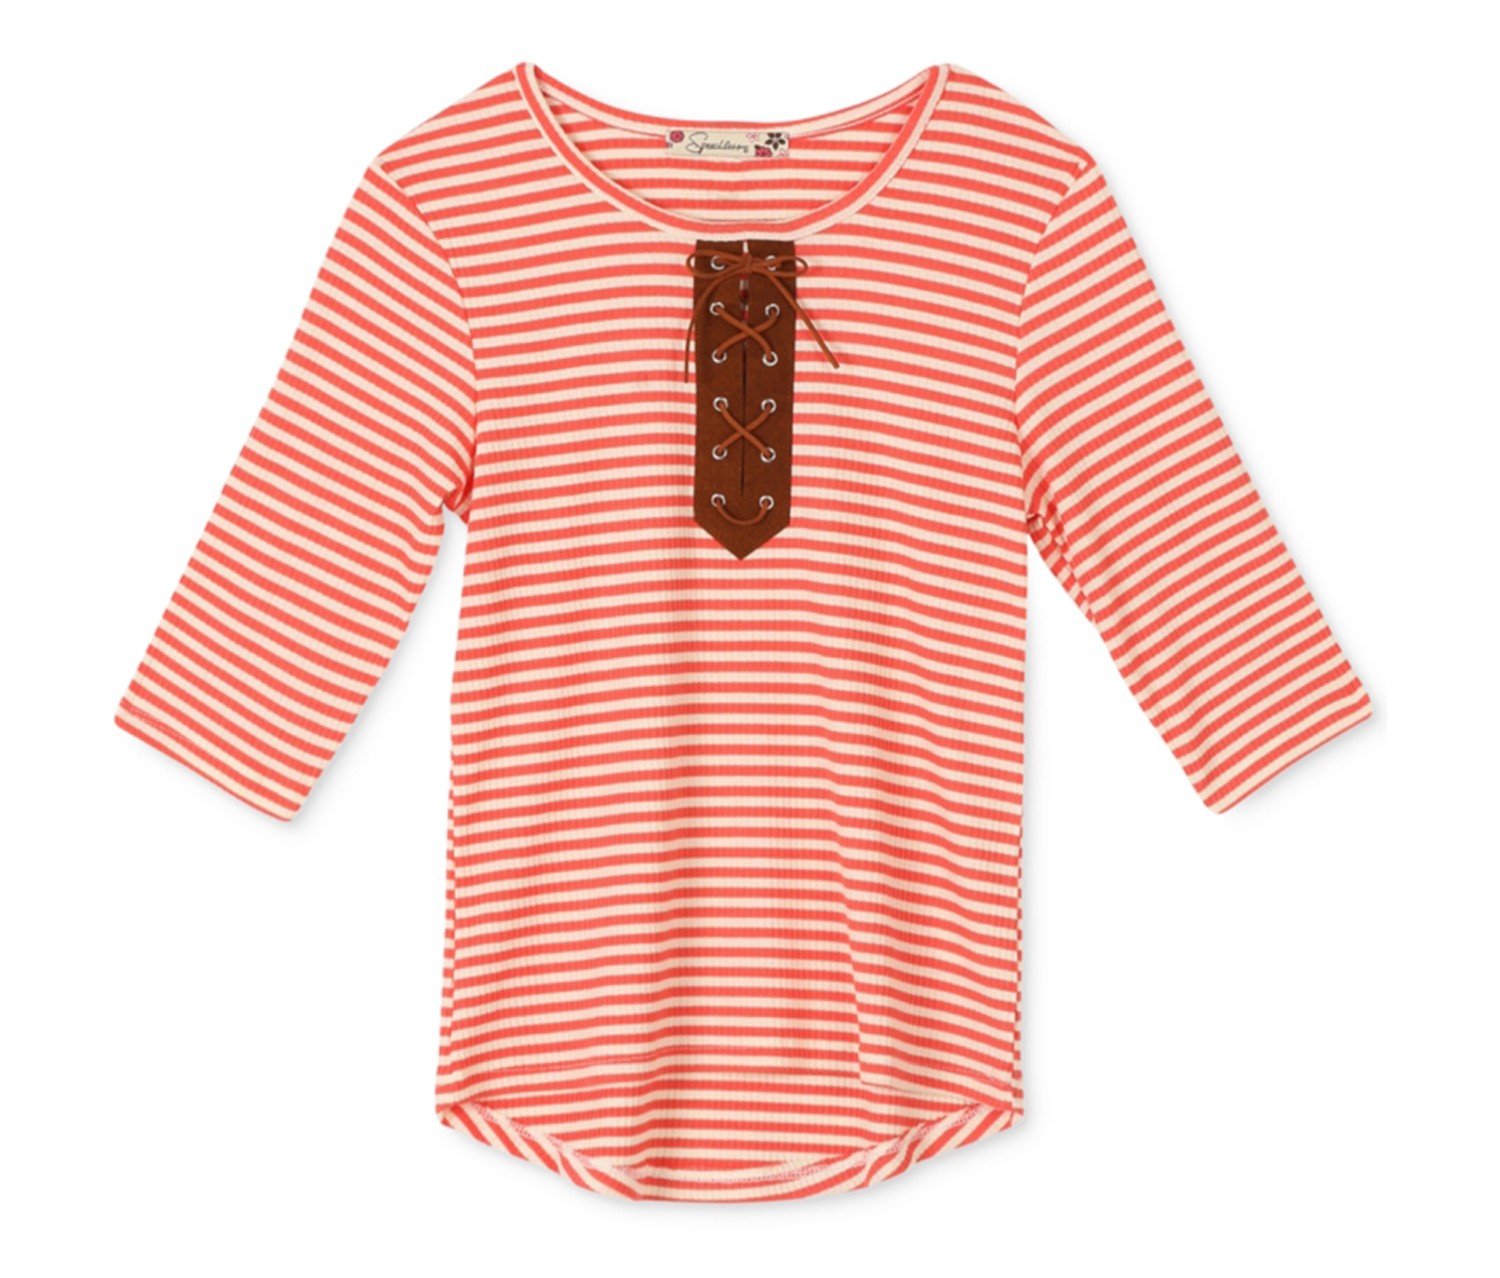 Speechless Girls' Stripe Lace-Up Top, Orange